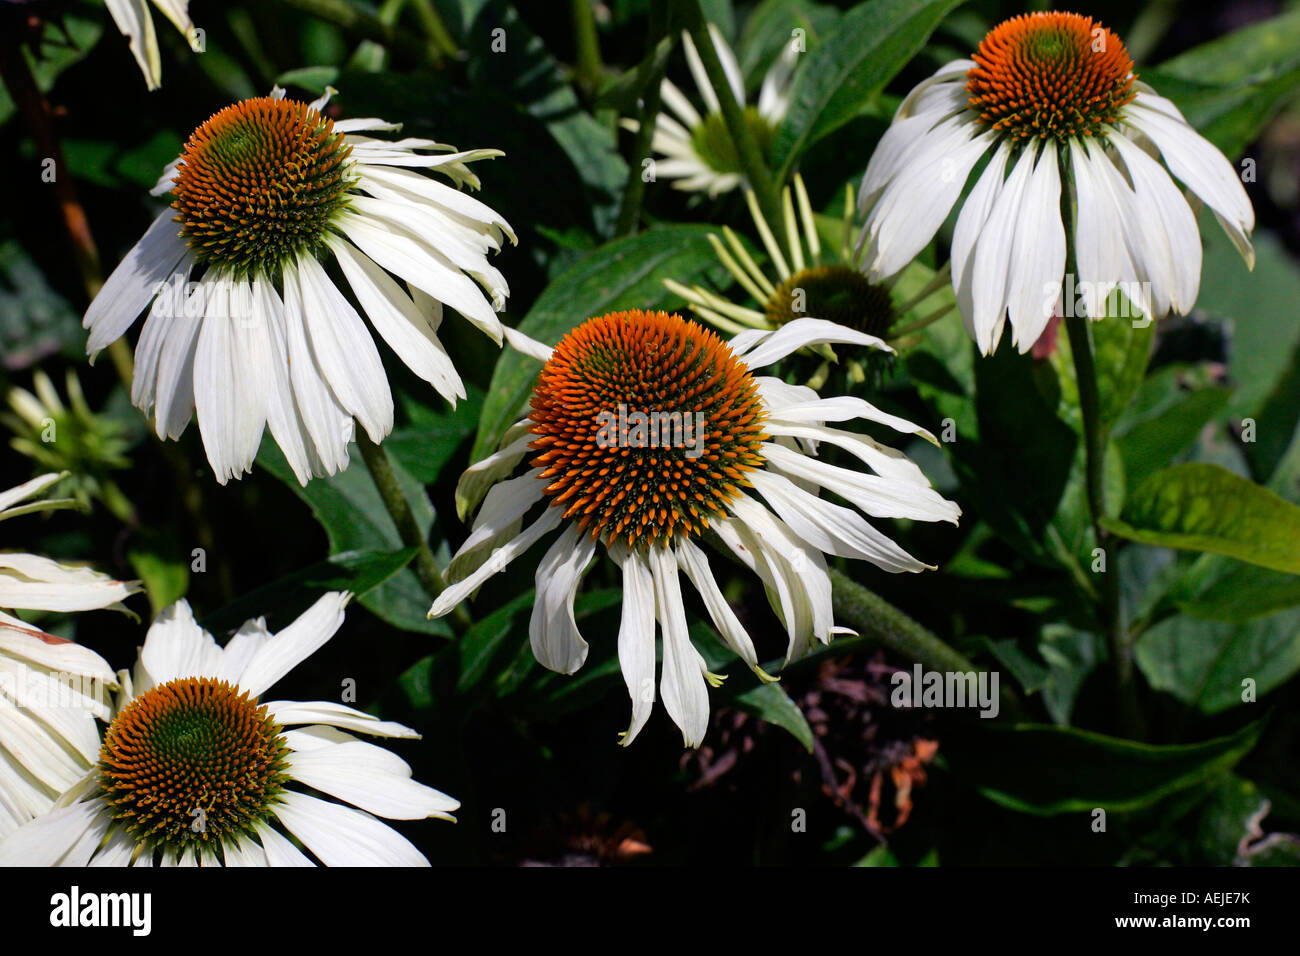 Flowering purple cone flower cultivar Alba (Echinacea purpurea Alba) - Stock Image